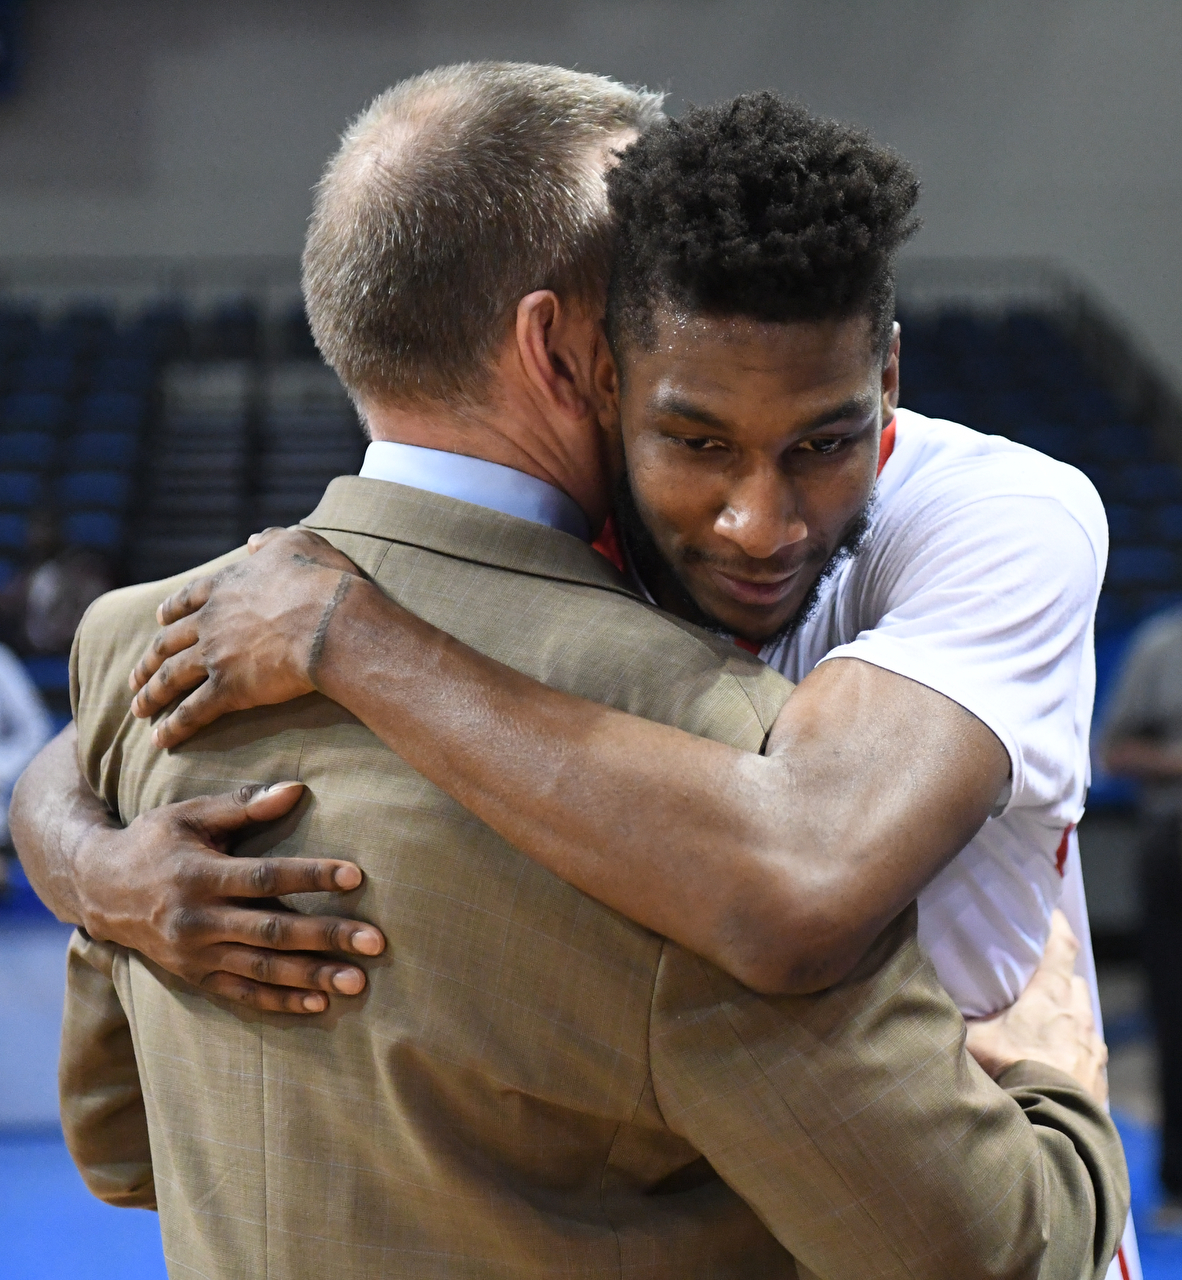 Basketball player his hugging coach